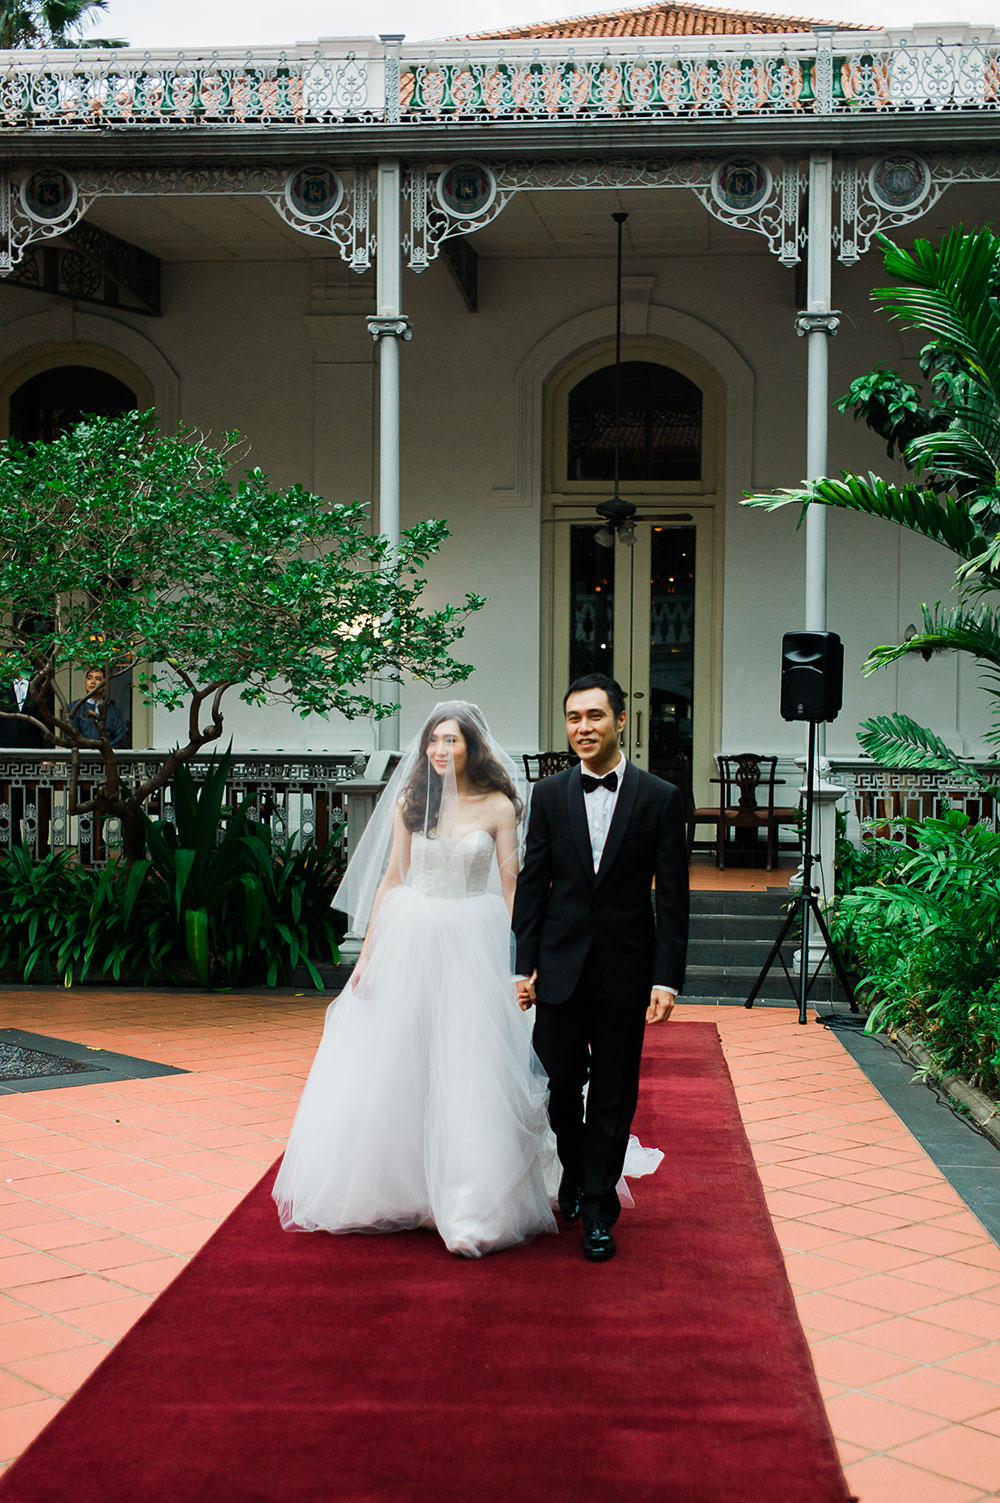 Singaore-Raffles-Hotel-Wedding-entrance